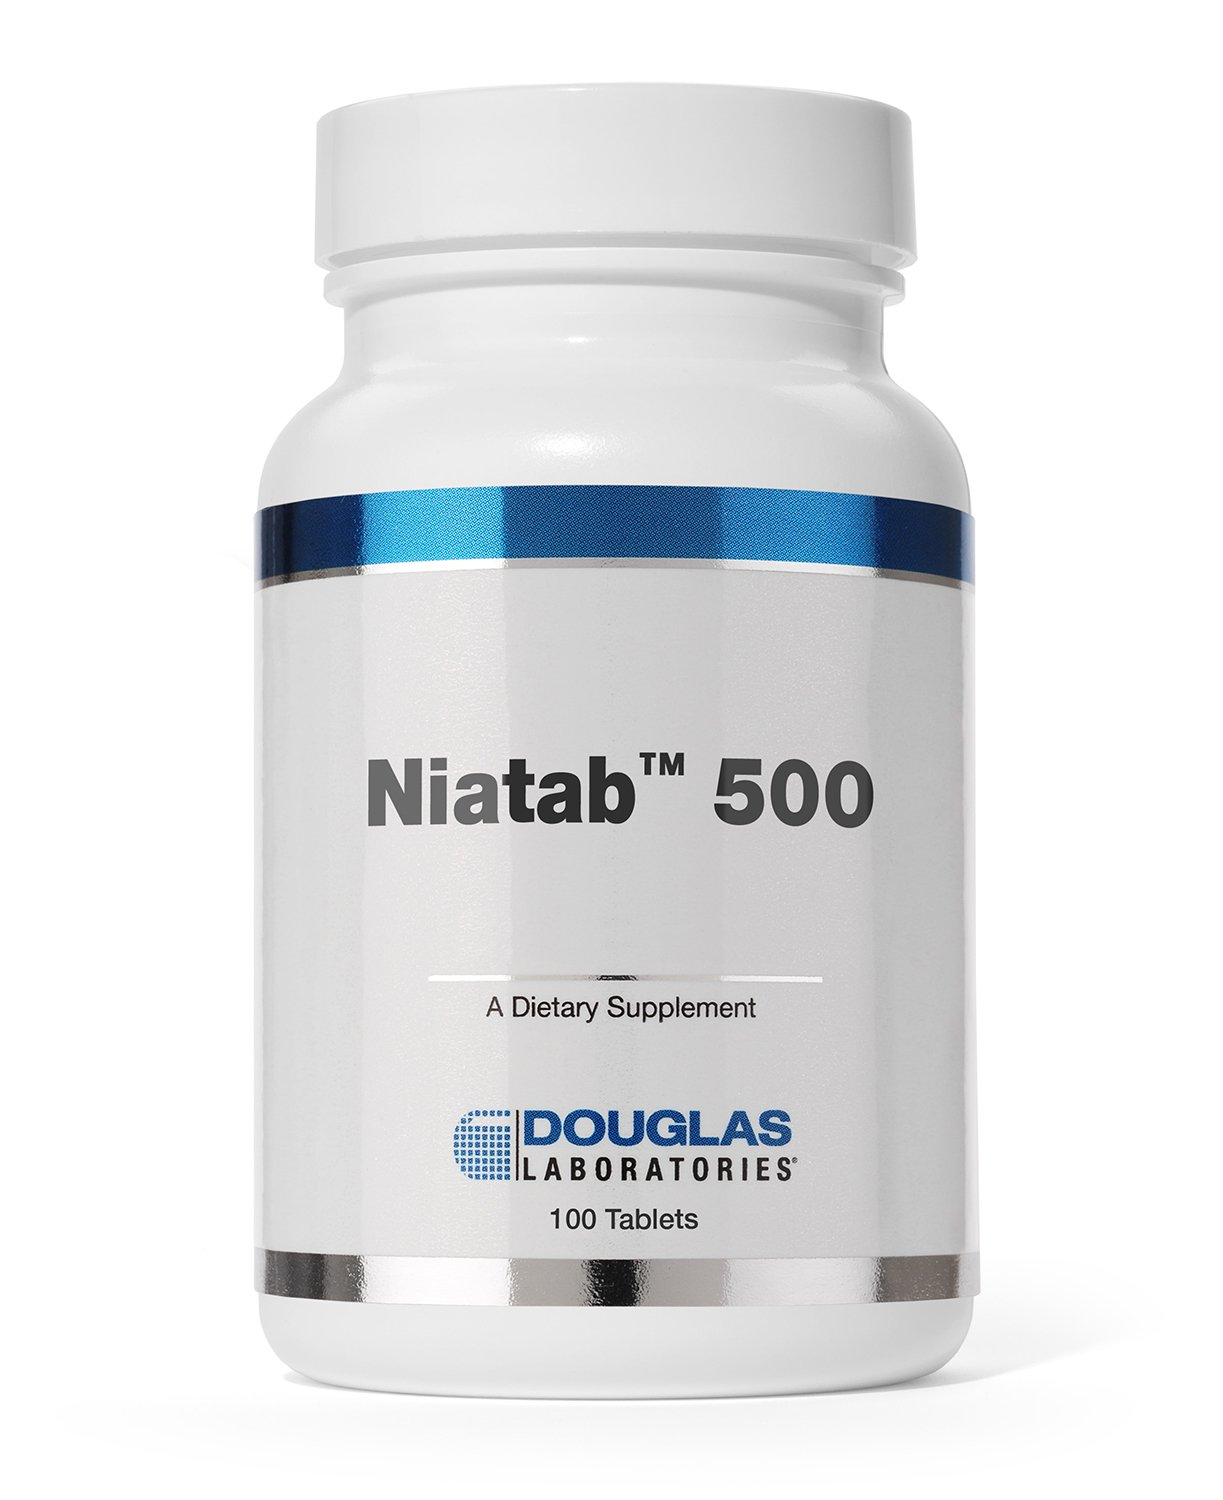 Douglas Laboratories - Niatab 500 - ''No-Flush'' High Potency Niacin with Sustained Release to Support Cardiovascular Health* - 100 Tablets